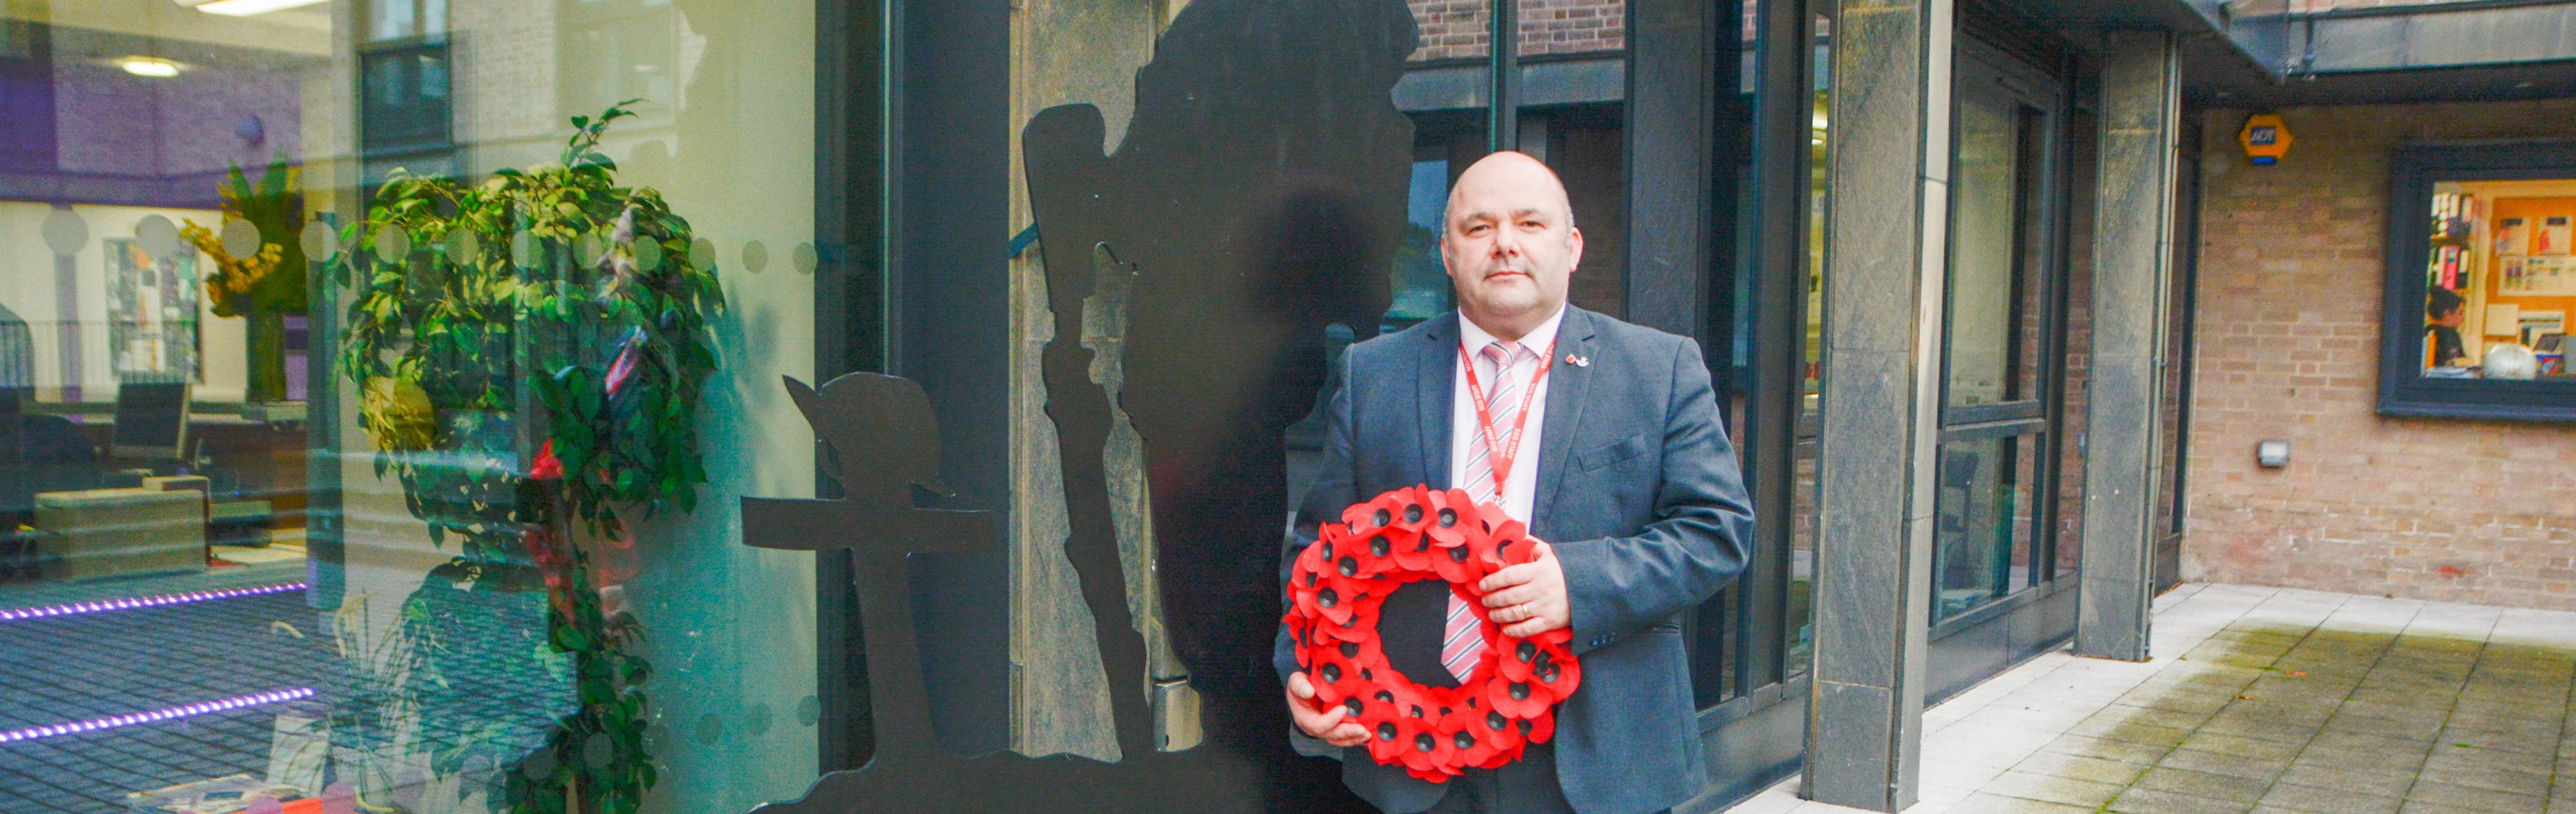 Ex-Soldier hand makes Remembrance Day silhouettes